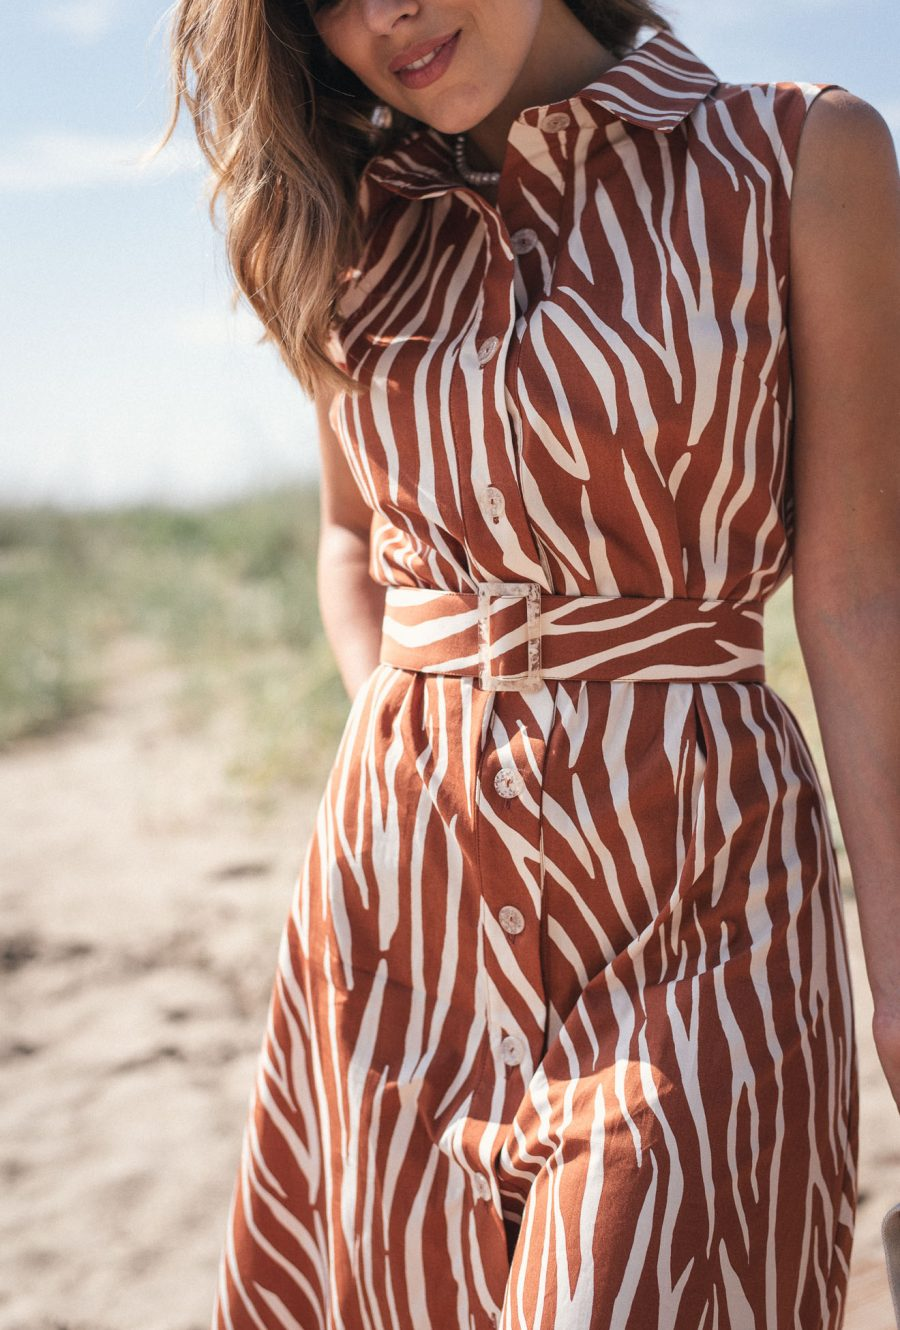 Beach style dress from the collection